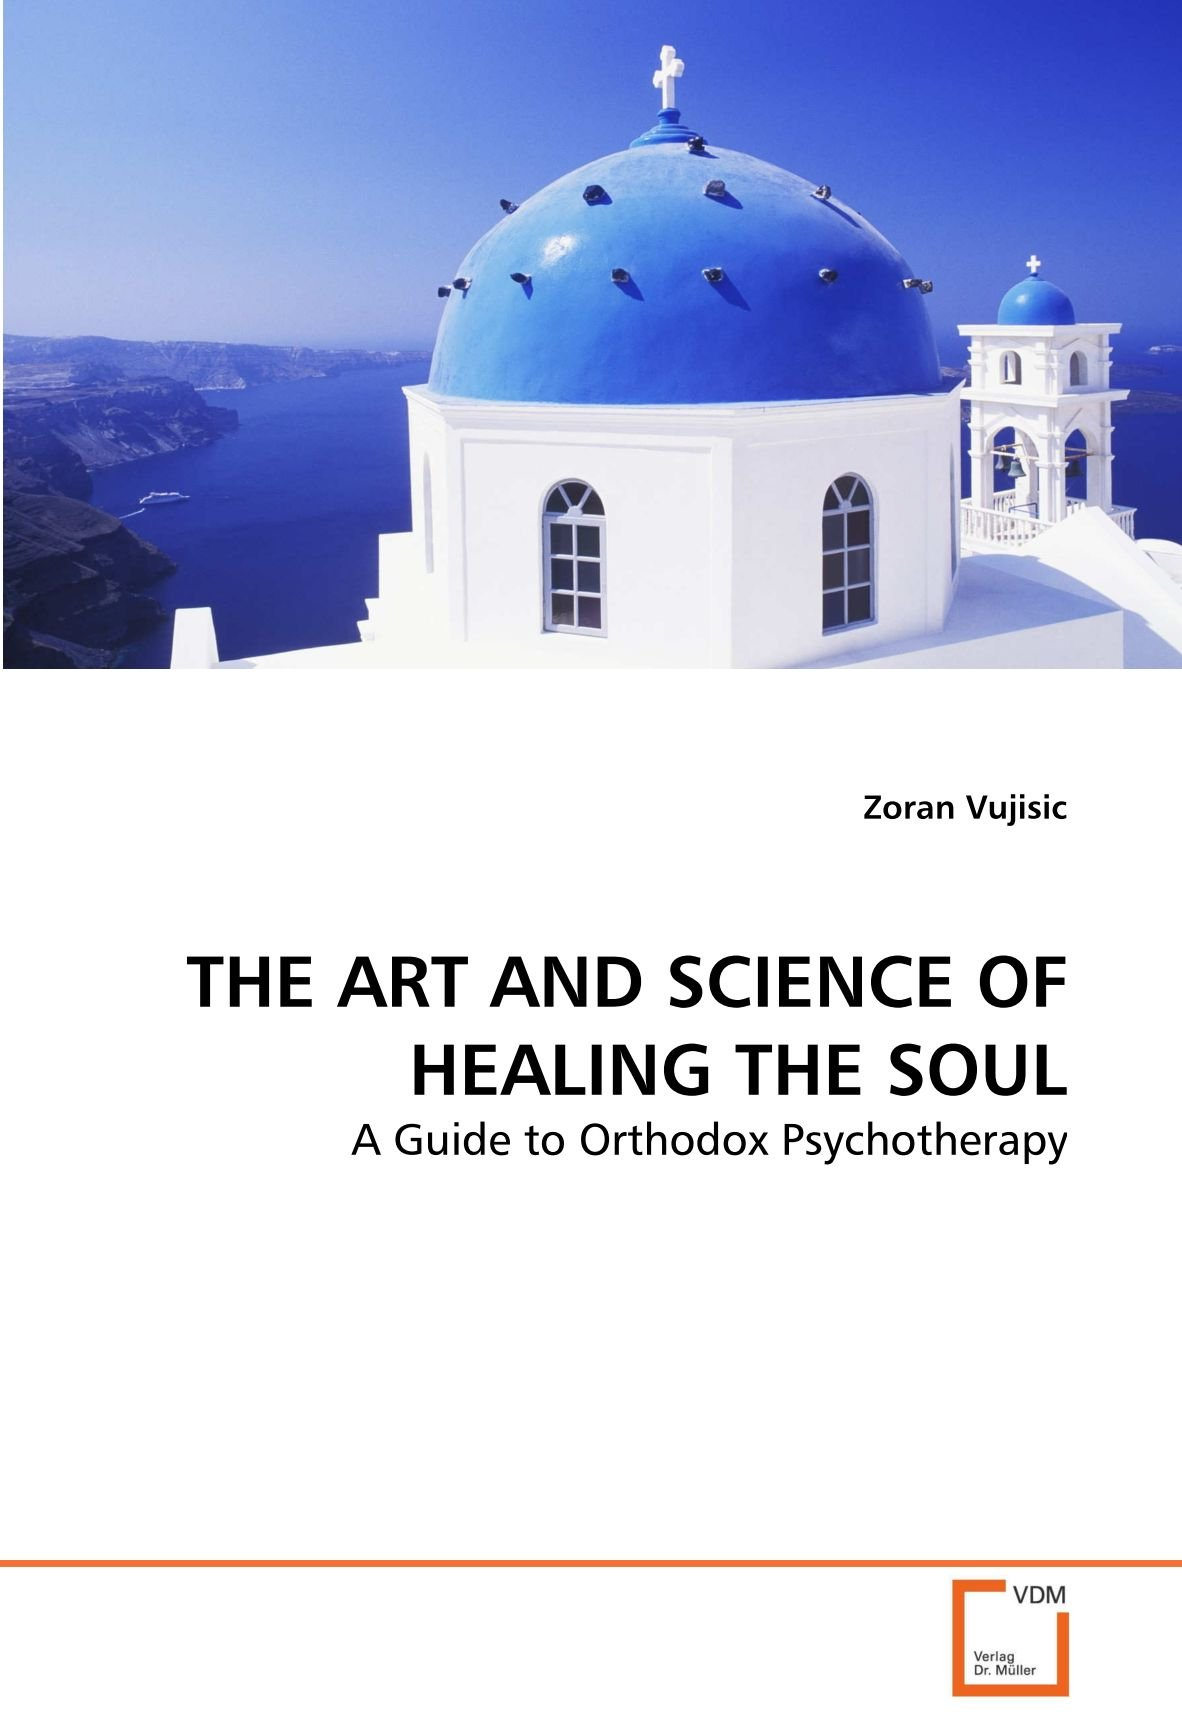 Read Online THE ART AND SCIENCE OF HEALING THE SOUL: A Guide to Orthodox Psychotherapy pdf epub